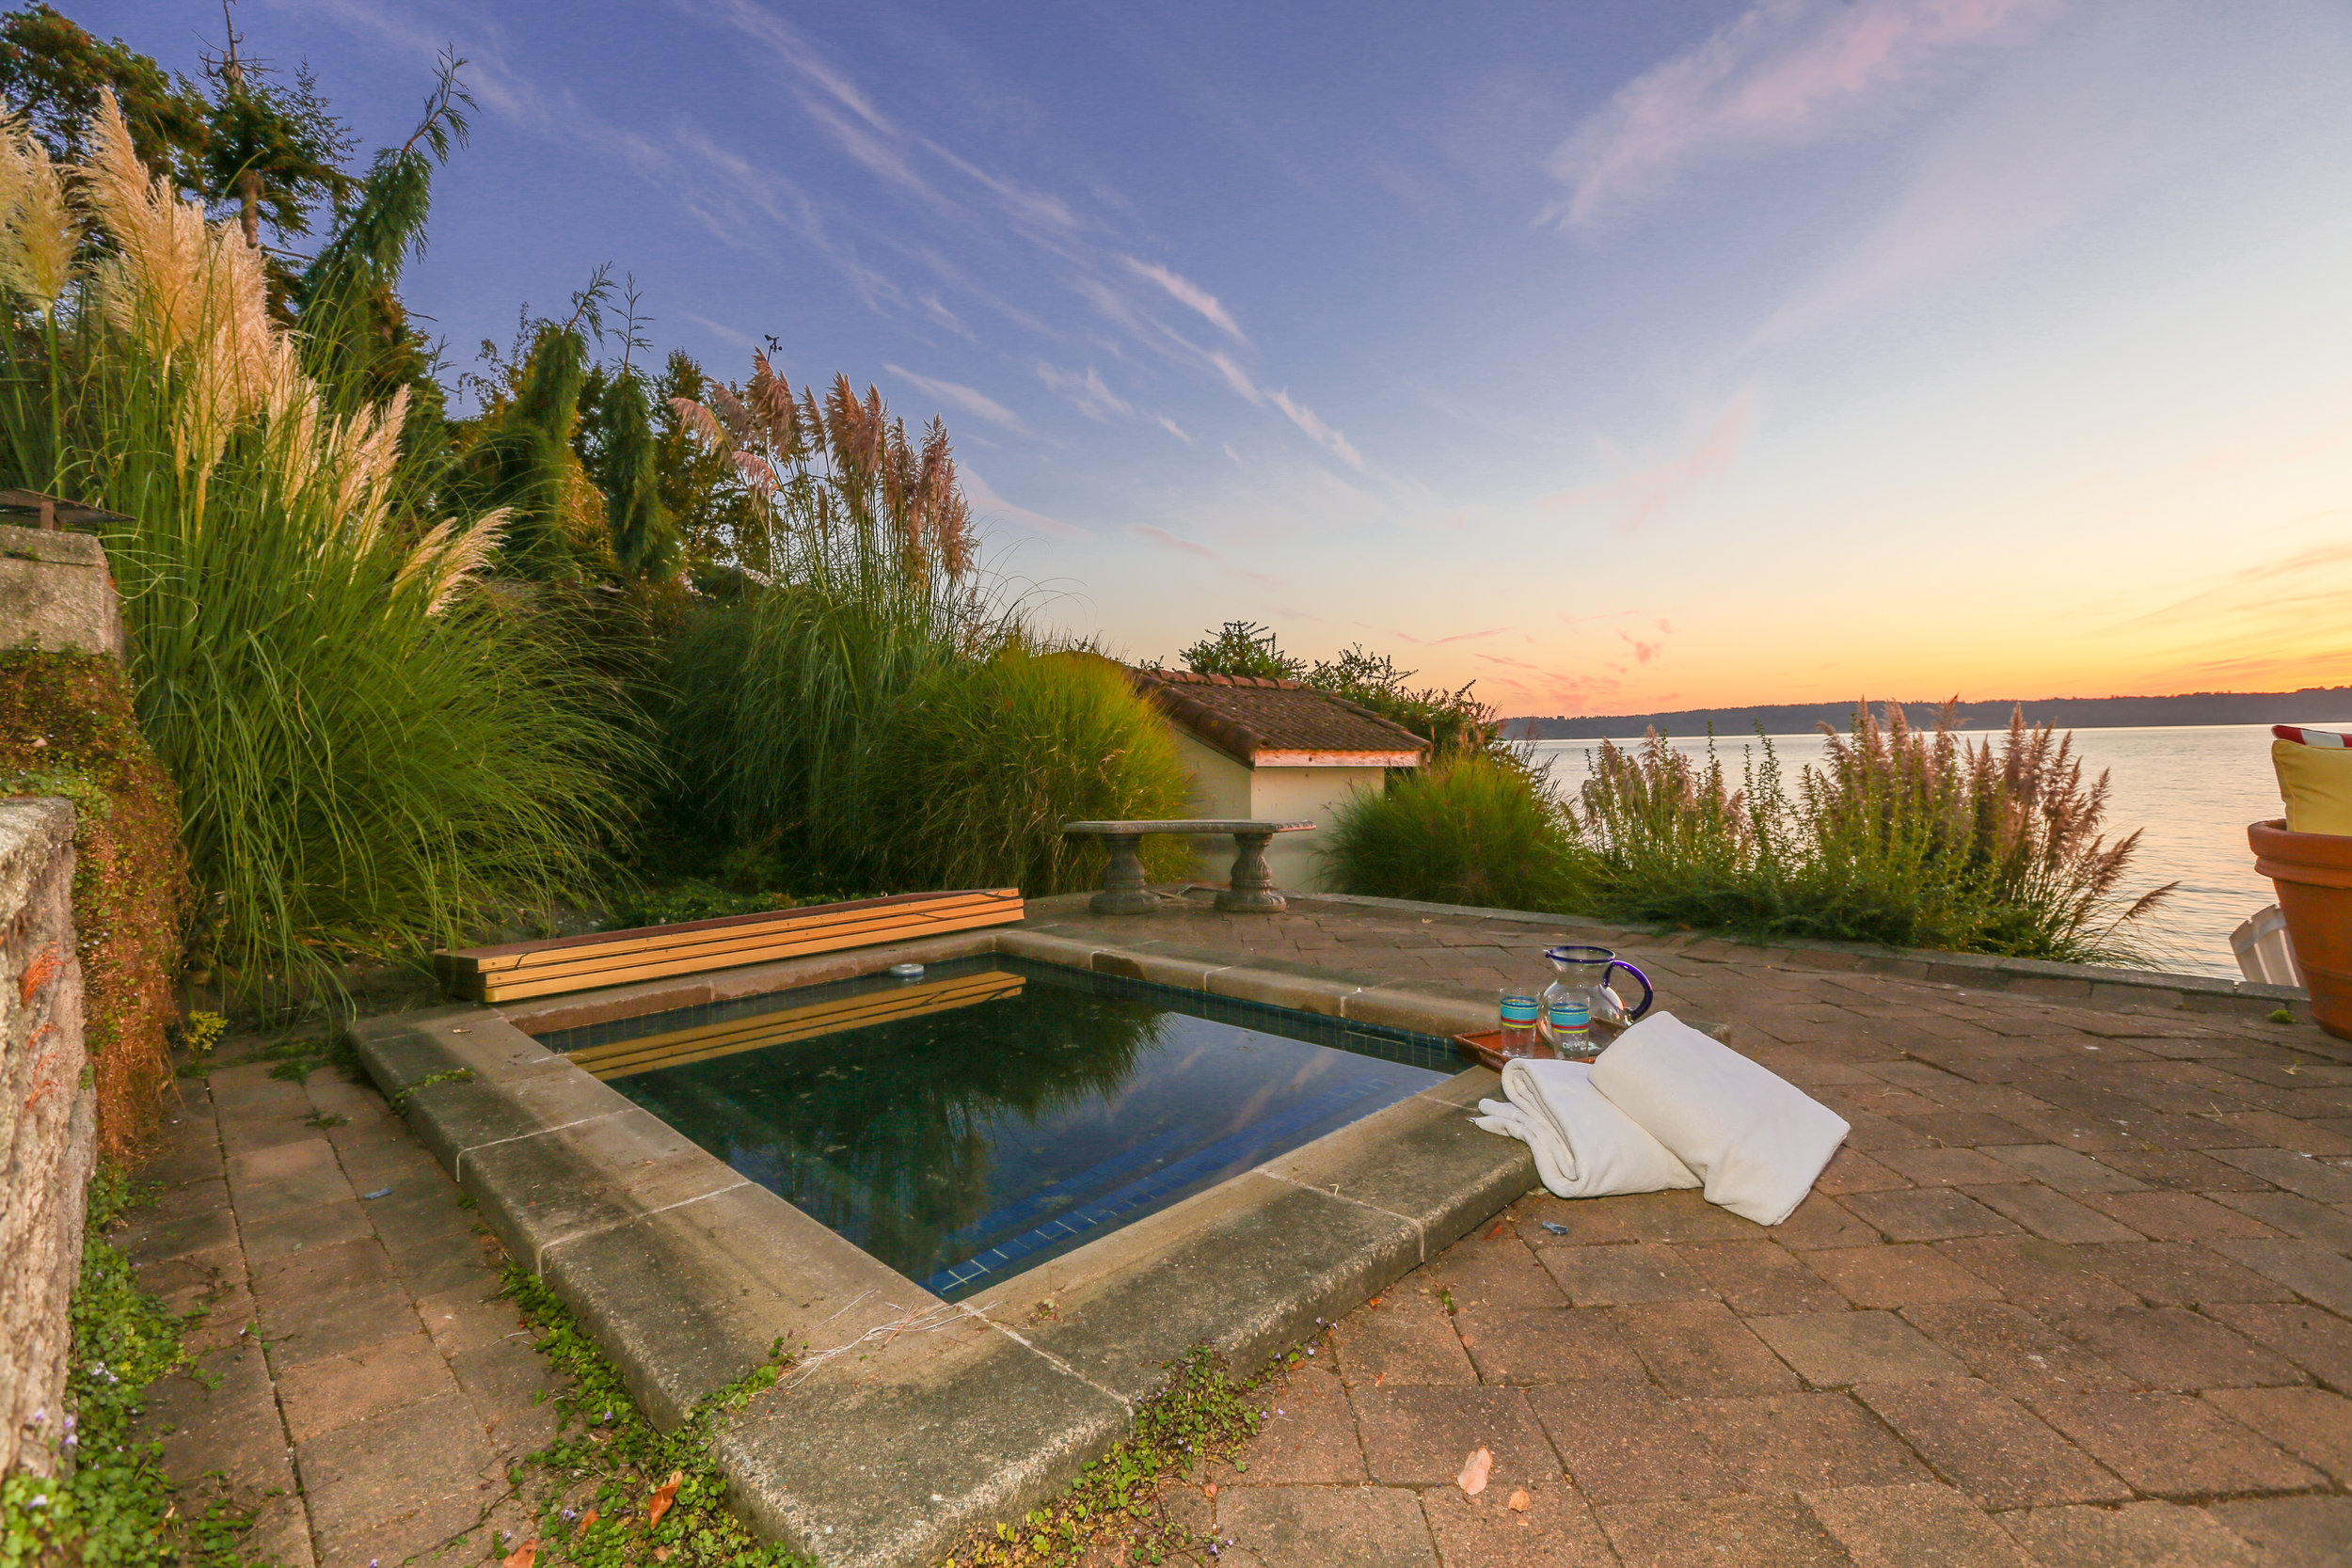 #11 Wild Grass Creates Privacy at Spa with Imported Tiles.jpg